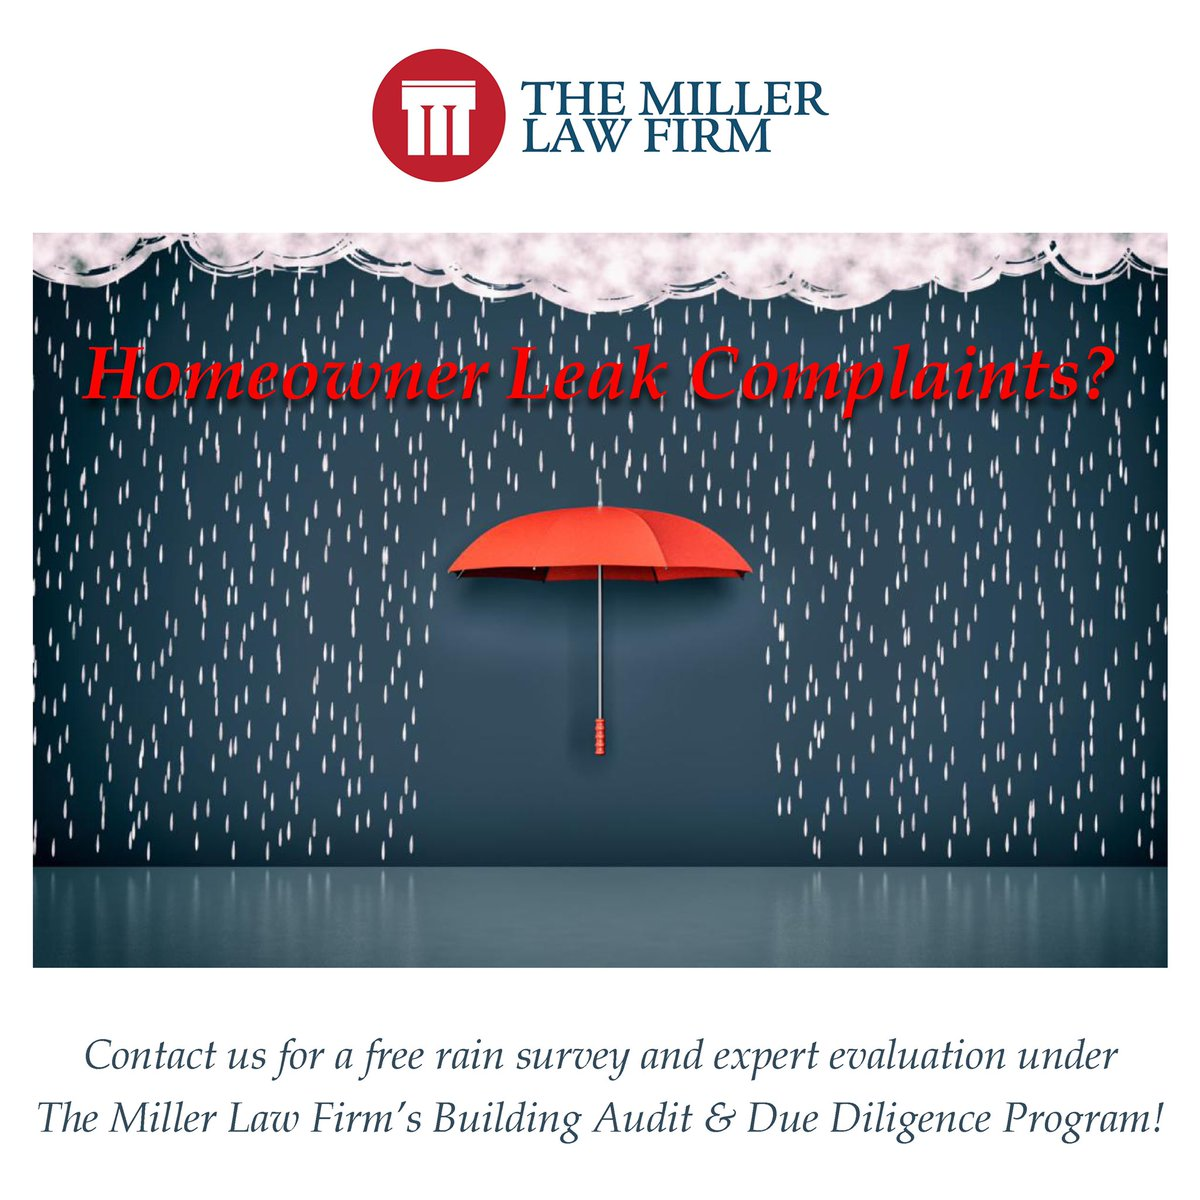 Homeowner Leak Complaints? Contact us for a free rain survey and expert evaluation under The Miller Law Firm's Building Audit & Due Diligence Program!     | info@constructiondefects.com | 800.403.3332  #TMLF #constructiondefects #sf #bayarea #cybermonday